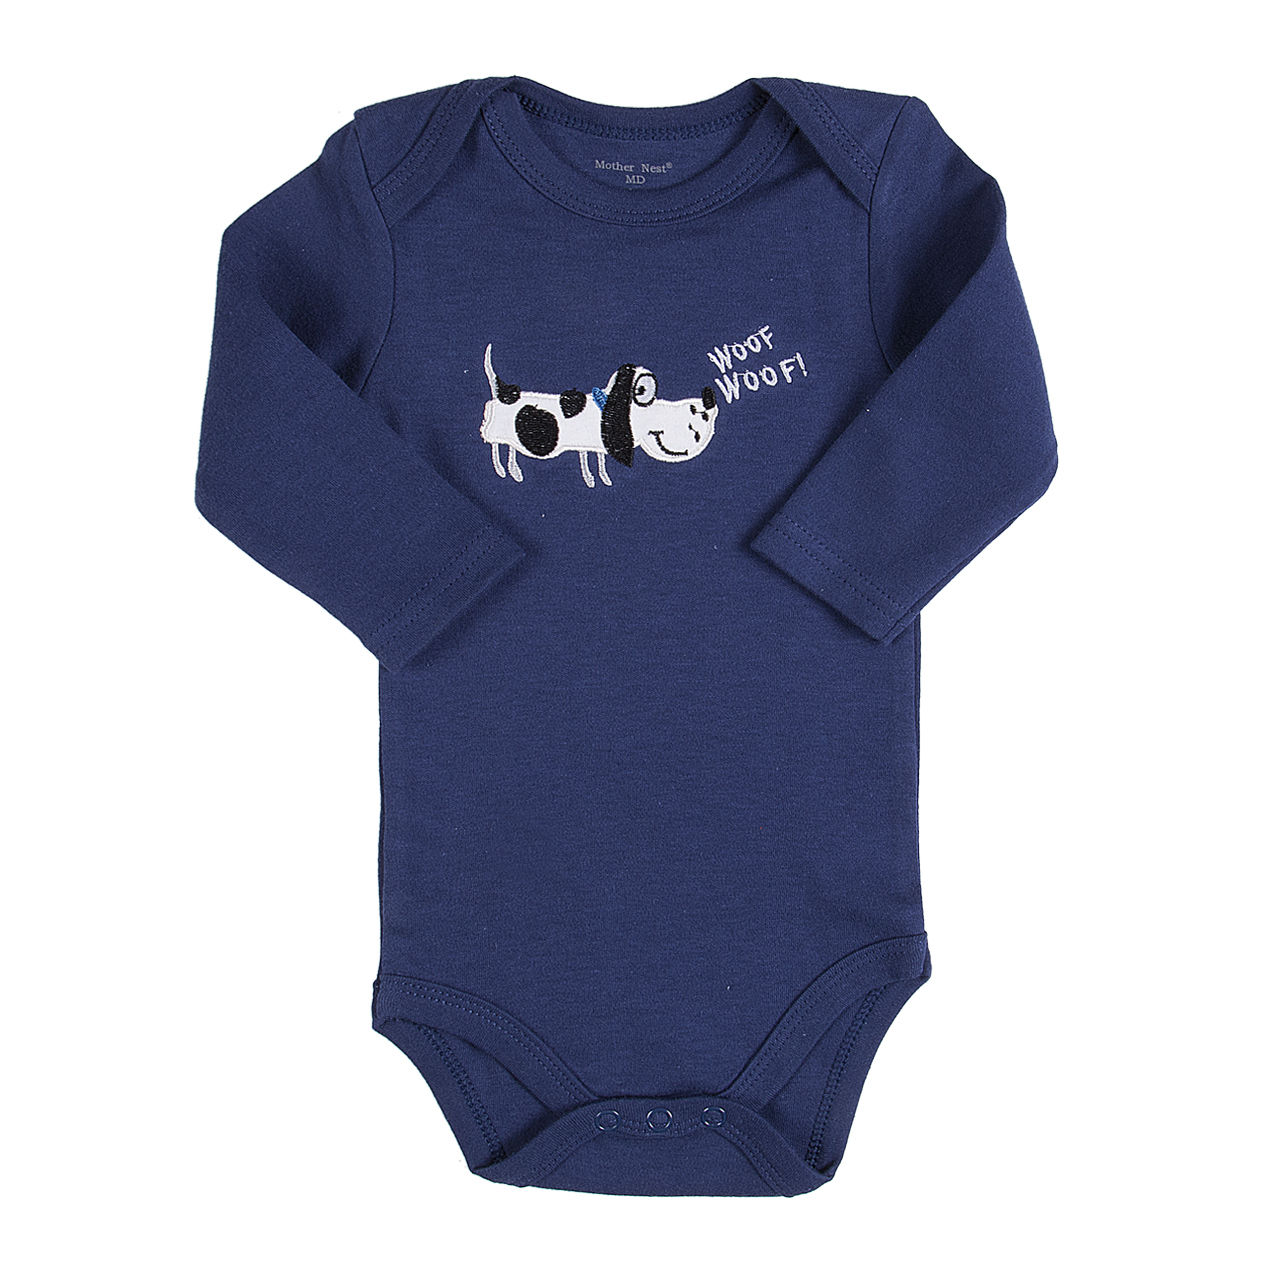 Kids Newborn Baby Boys Girls Long Sleeve Cotton Blue Dog Printed Romper Jumpsuit Clothes Outfit One Pieces Size 0-12M 2017 lovely newborn baby rompers infant bebes boys girls short sleeve printed baby clothes hooded jumpsuit costume outfit 0 18m